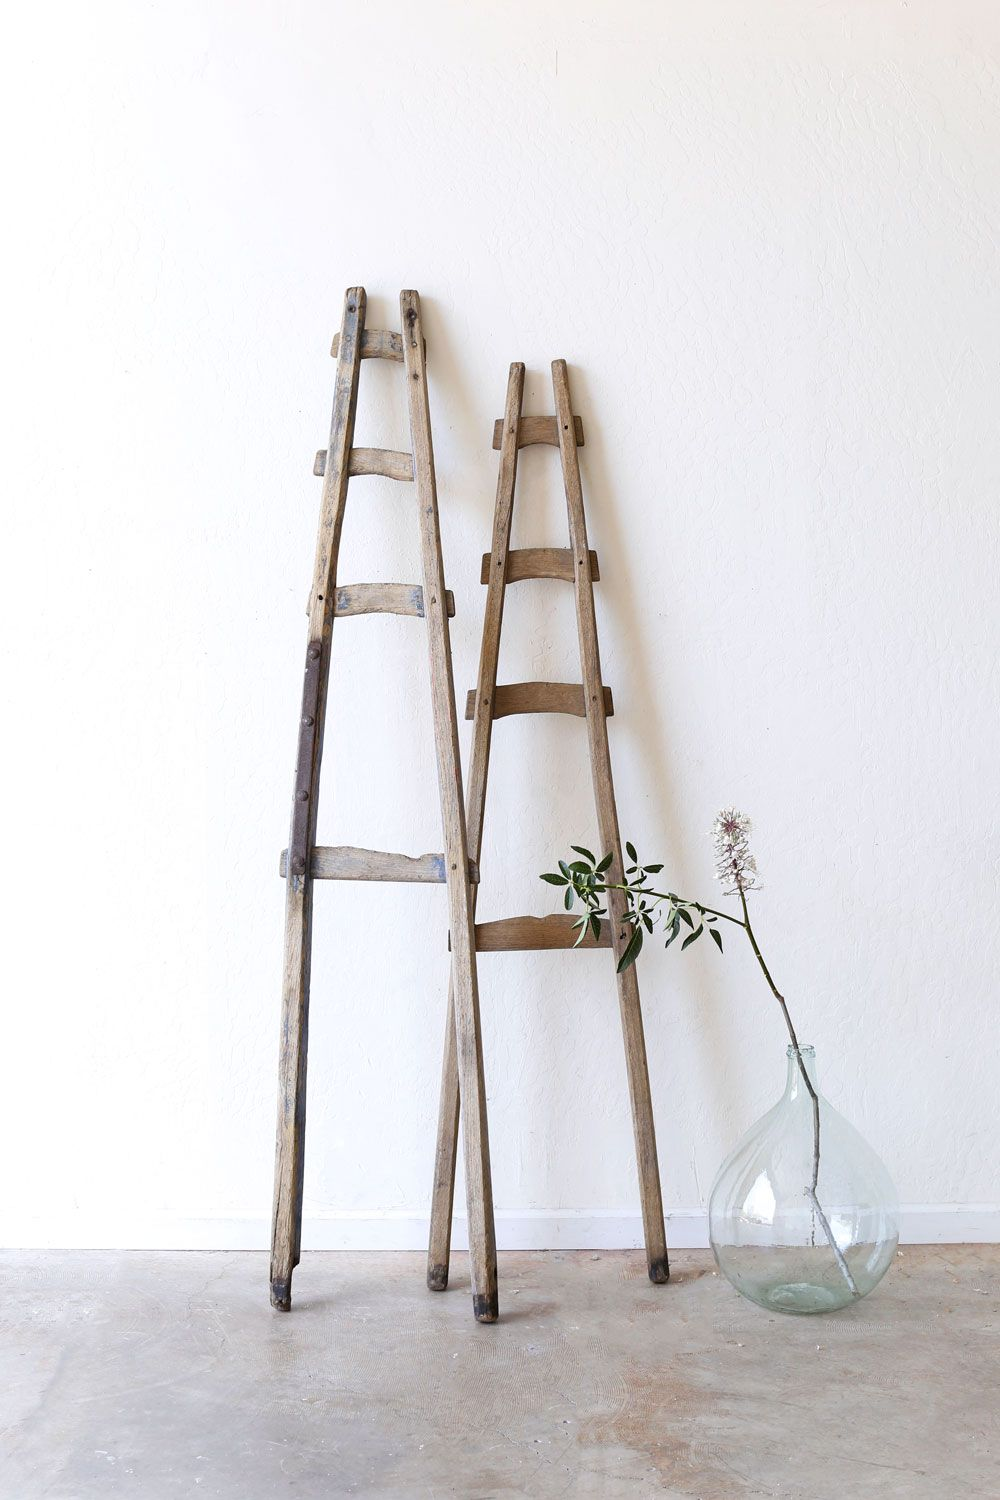 Rustic A-Frame ladder | Moving back in | Pinterest | Rustic, Rustic ...